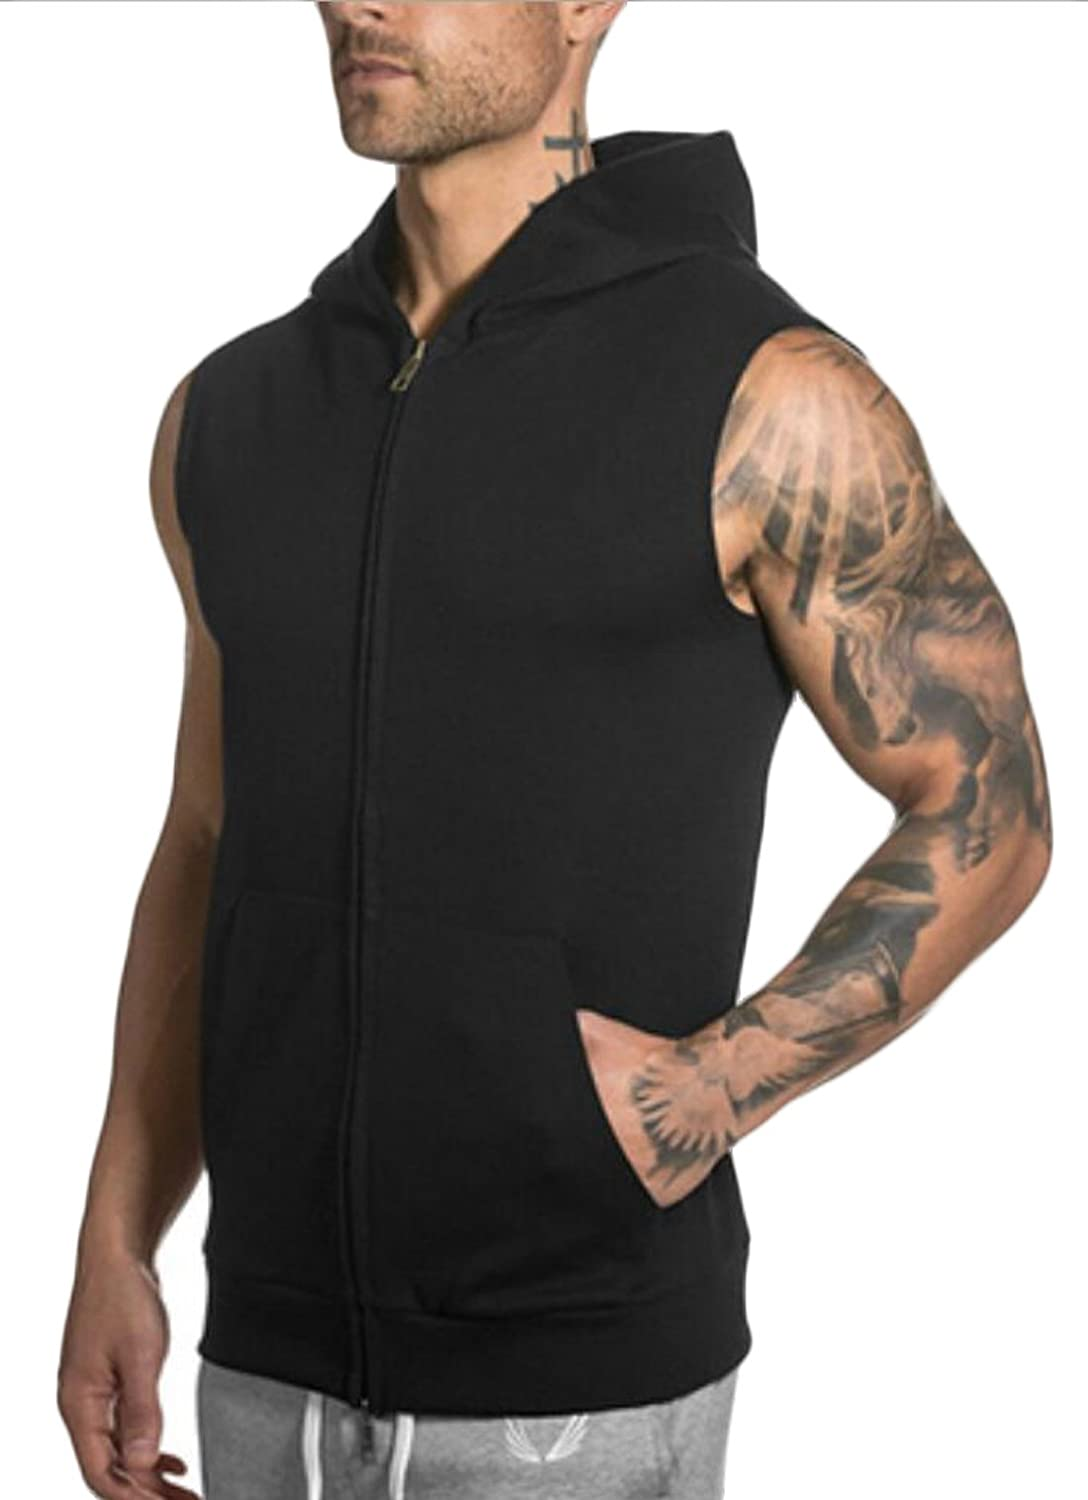 Acquaa Men's Hoodies Full Zip Sleeveless Hooded Sweatshirt